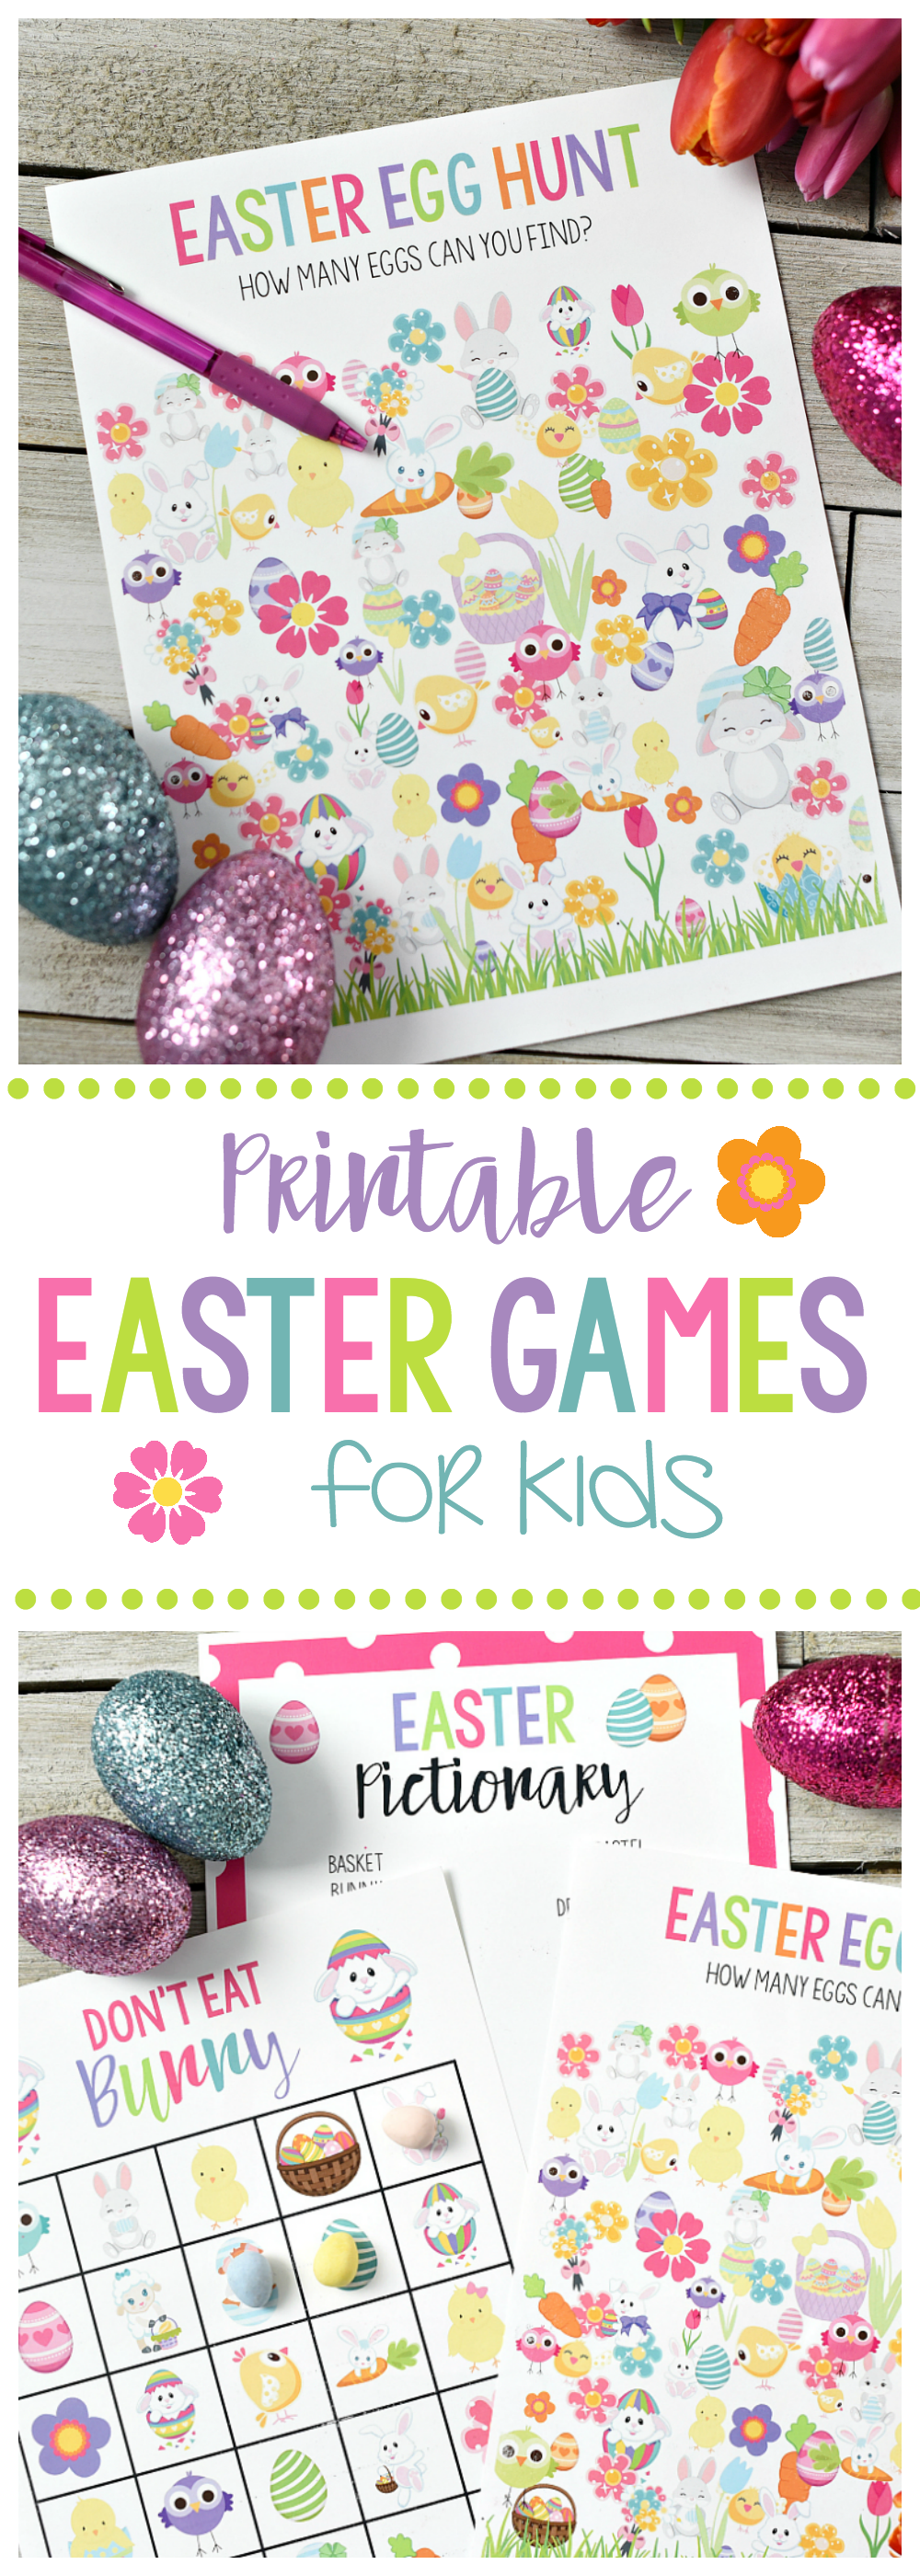 Cute Free Printable Easter Games for Kids-Easter Egg Hunt, Don't Eat Pete, and Easter Pictionary